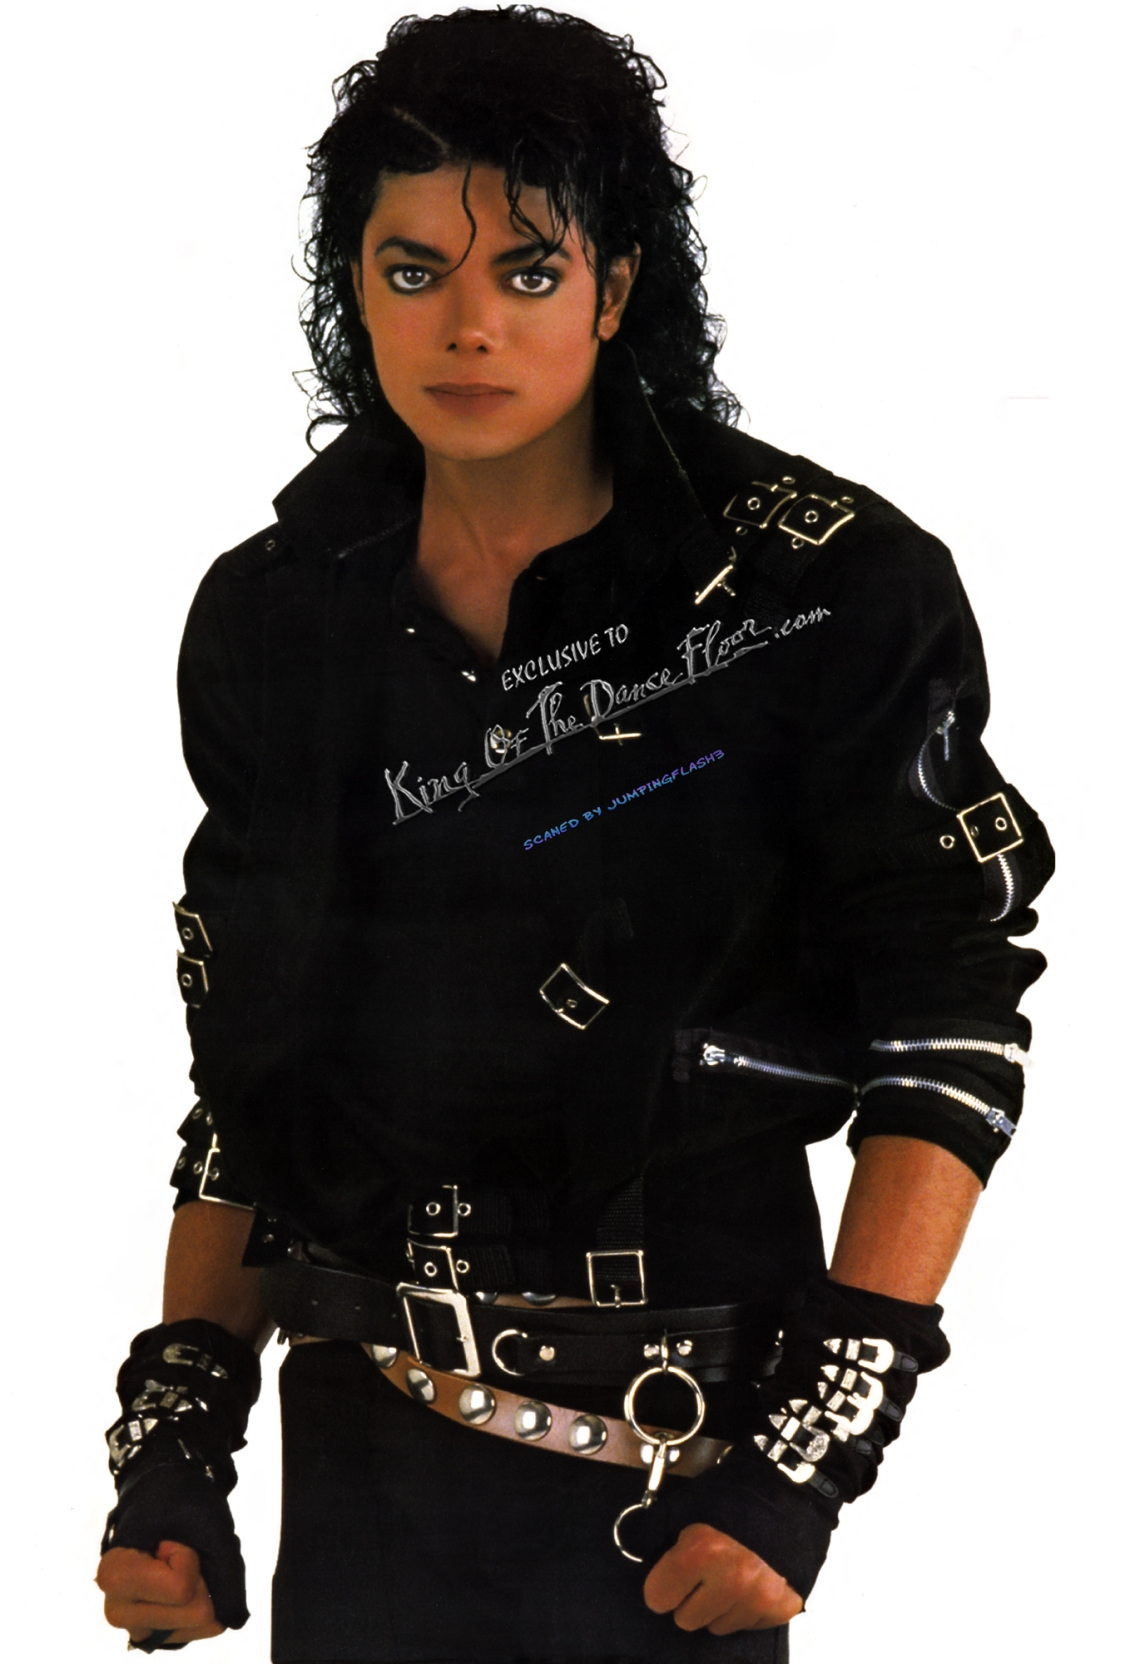 Michael-Jackson-BAD-Photoshoot-HQ-michael-jackson-30904810-1370-2000.jpg